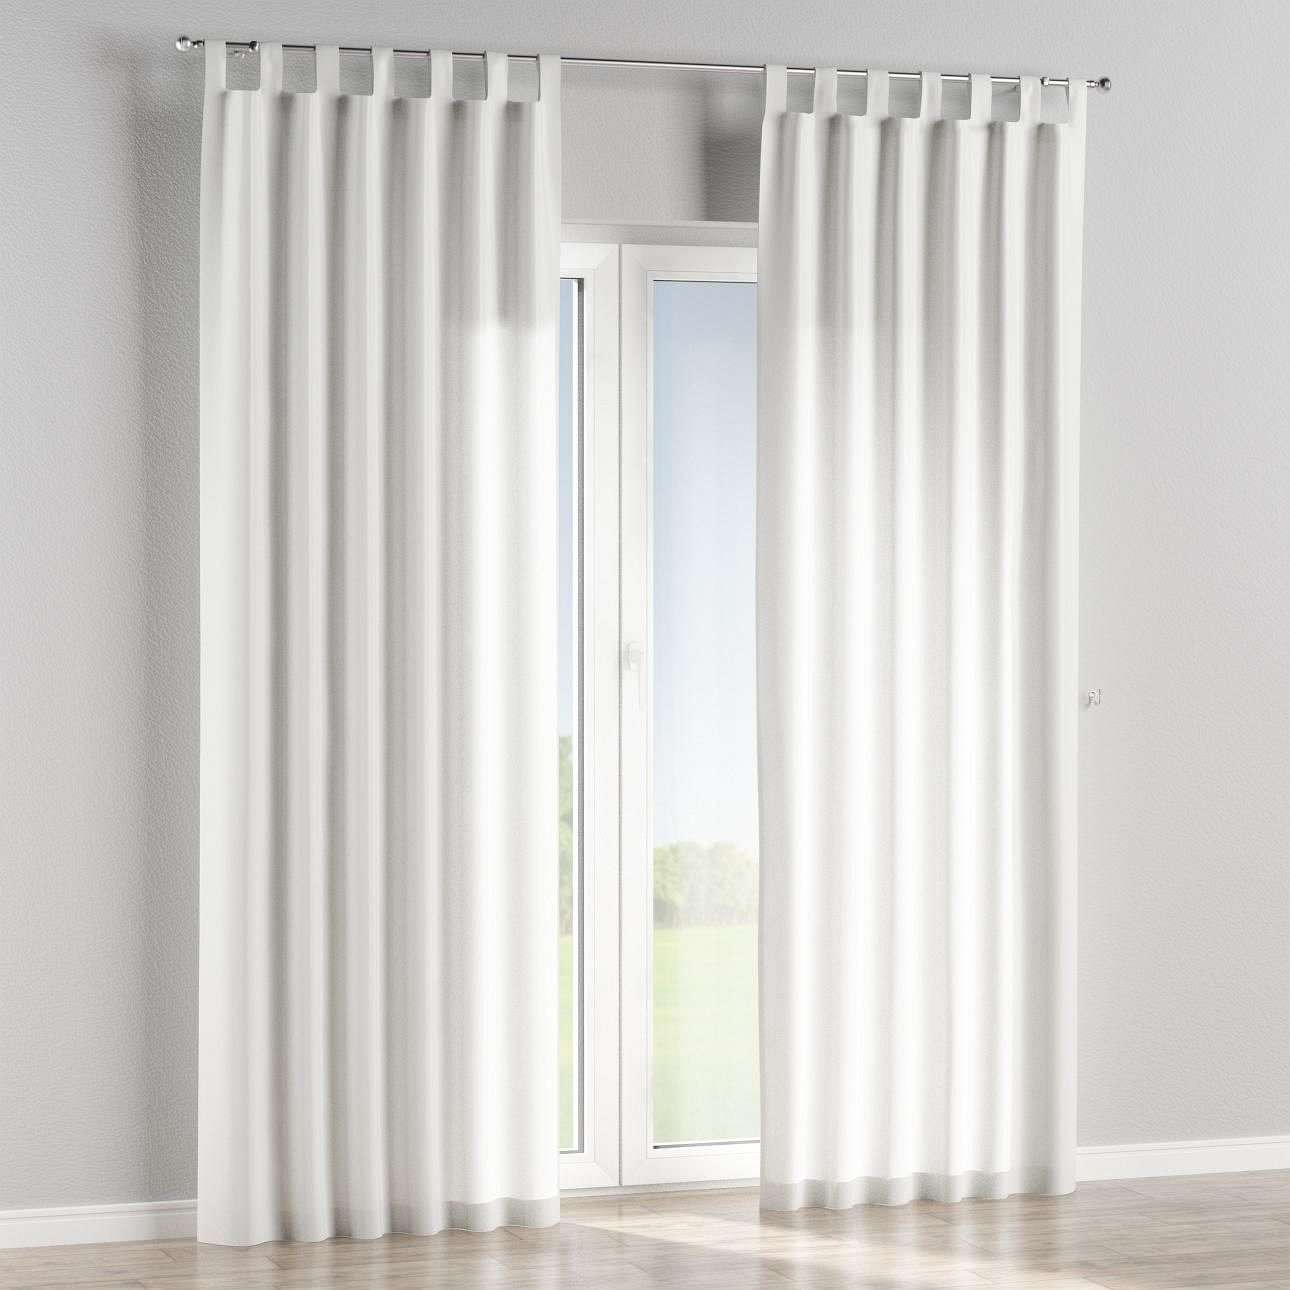 Tab top lined curtains in collection Norge, fabric: 150-19